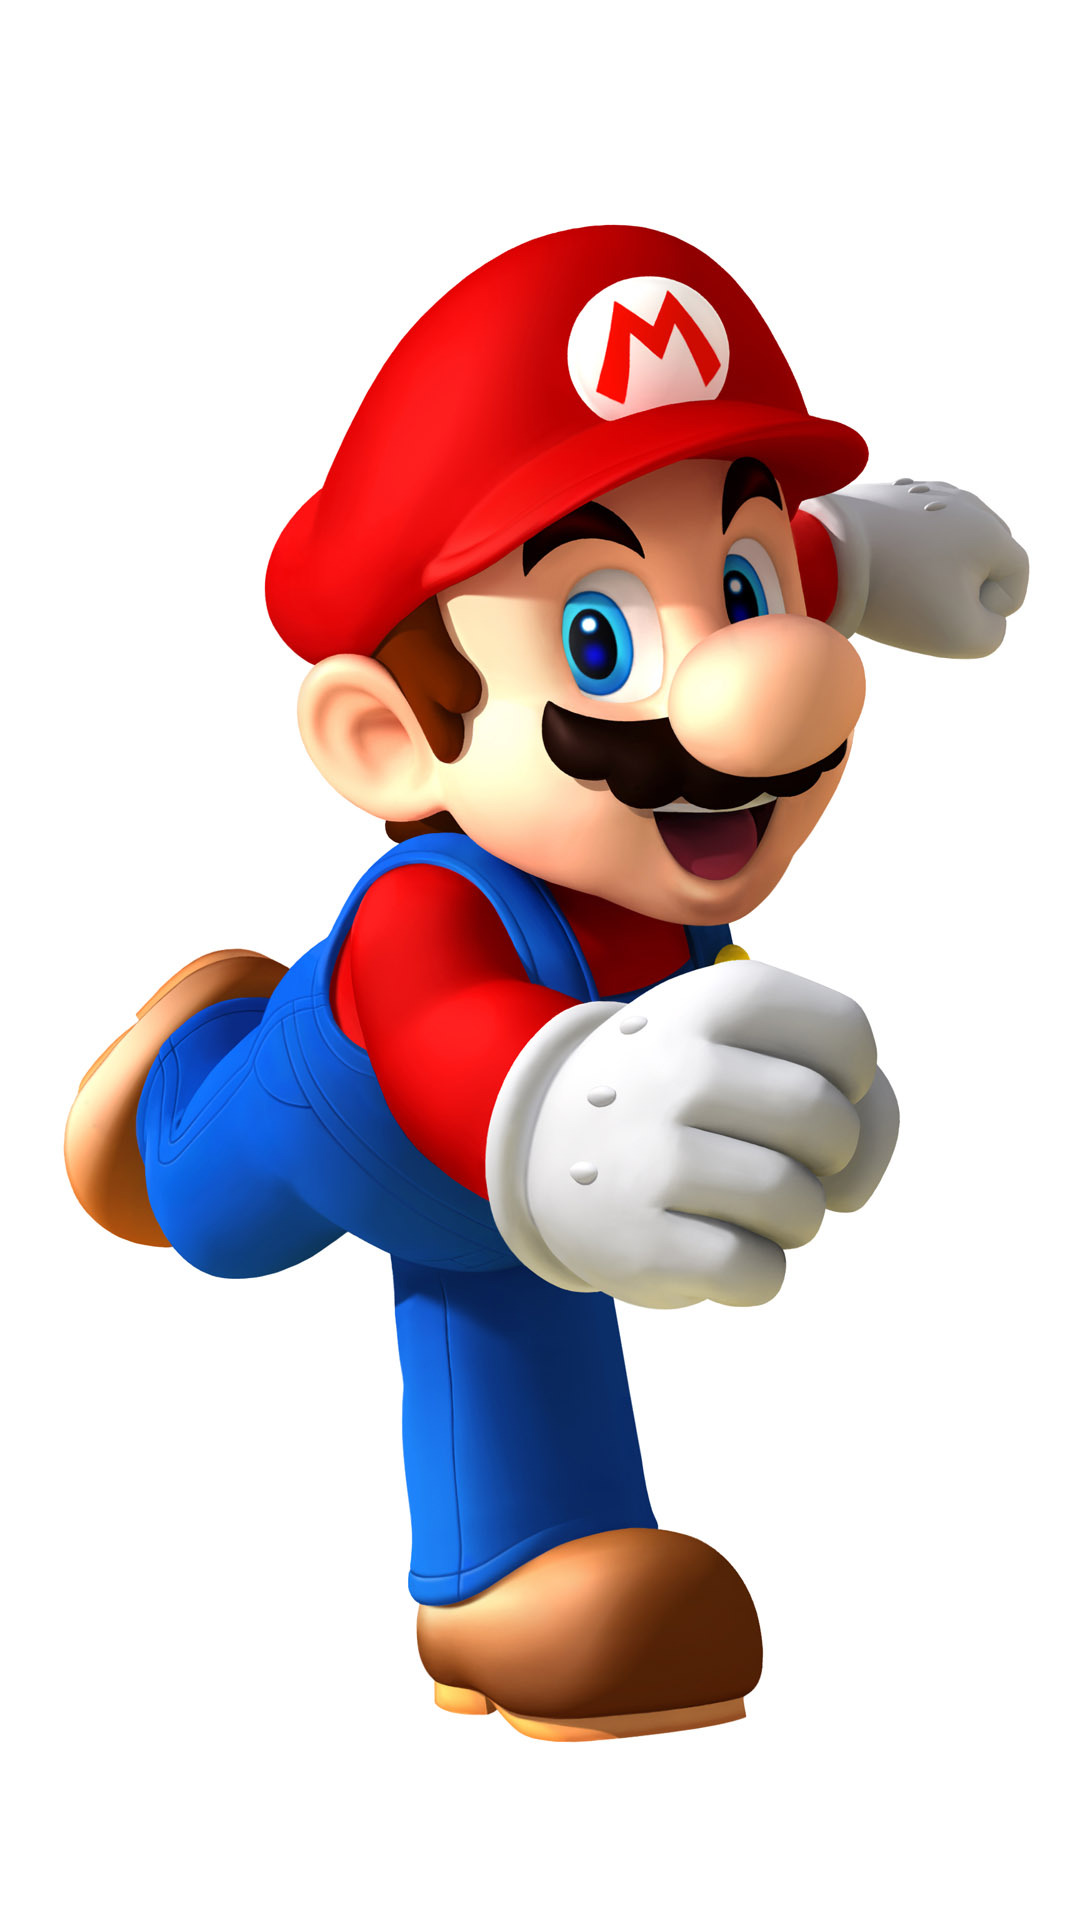 1080x1920-mario-hd-mobile-iphone -wallpaper